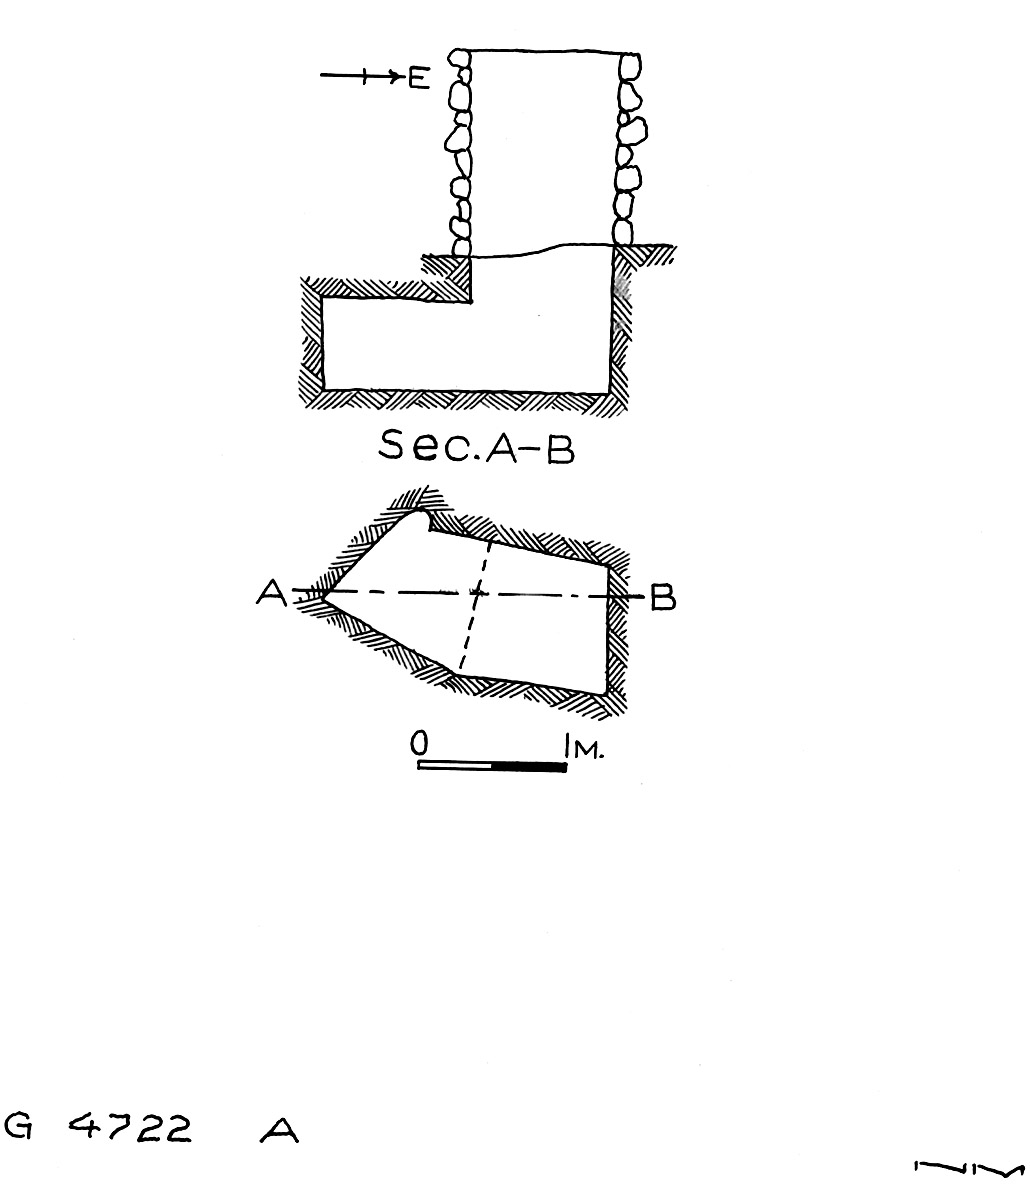 Maps and plans: G 4722, Shaft A